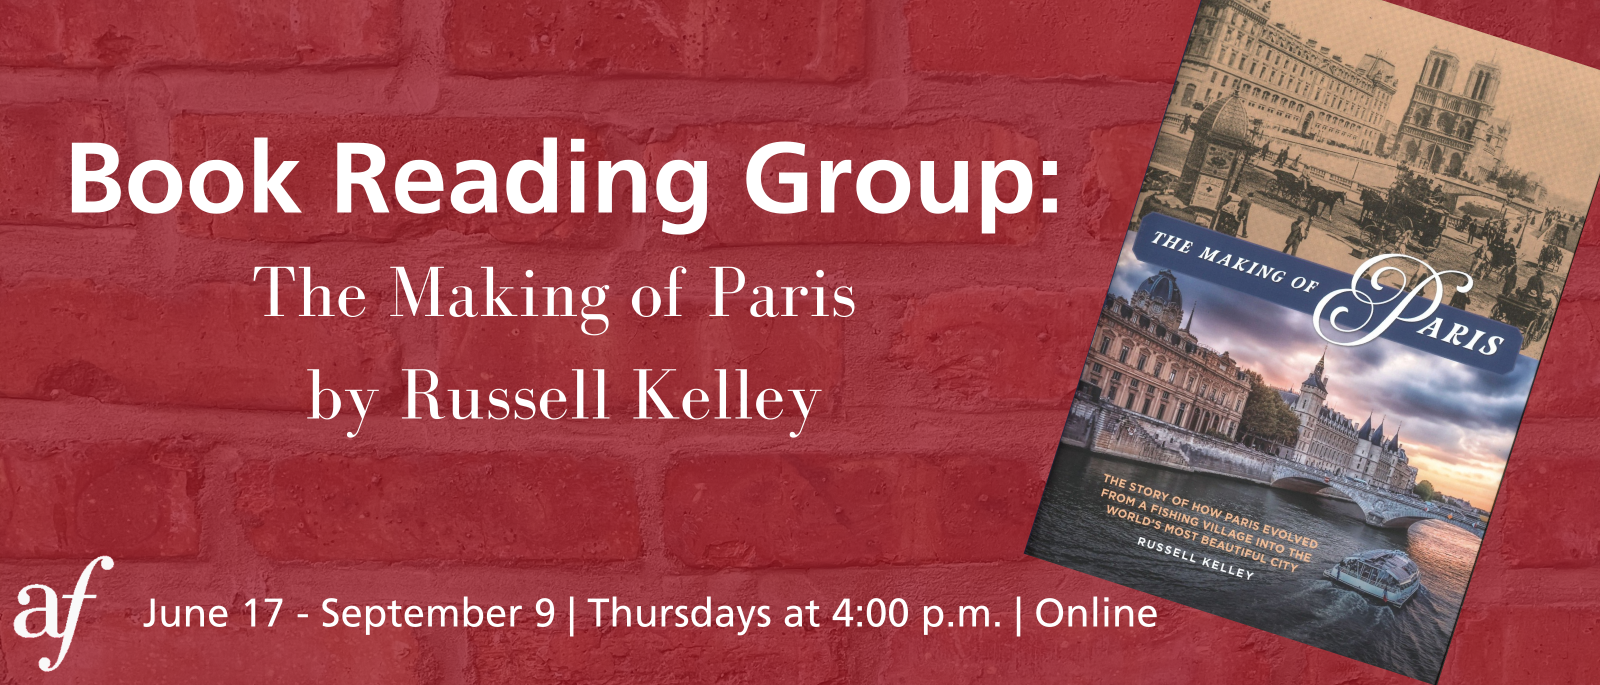 Book Reading Group: The Making of Paris - Session 4